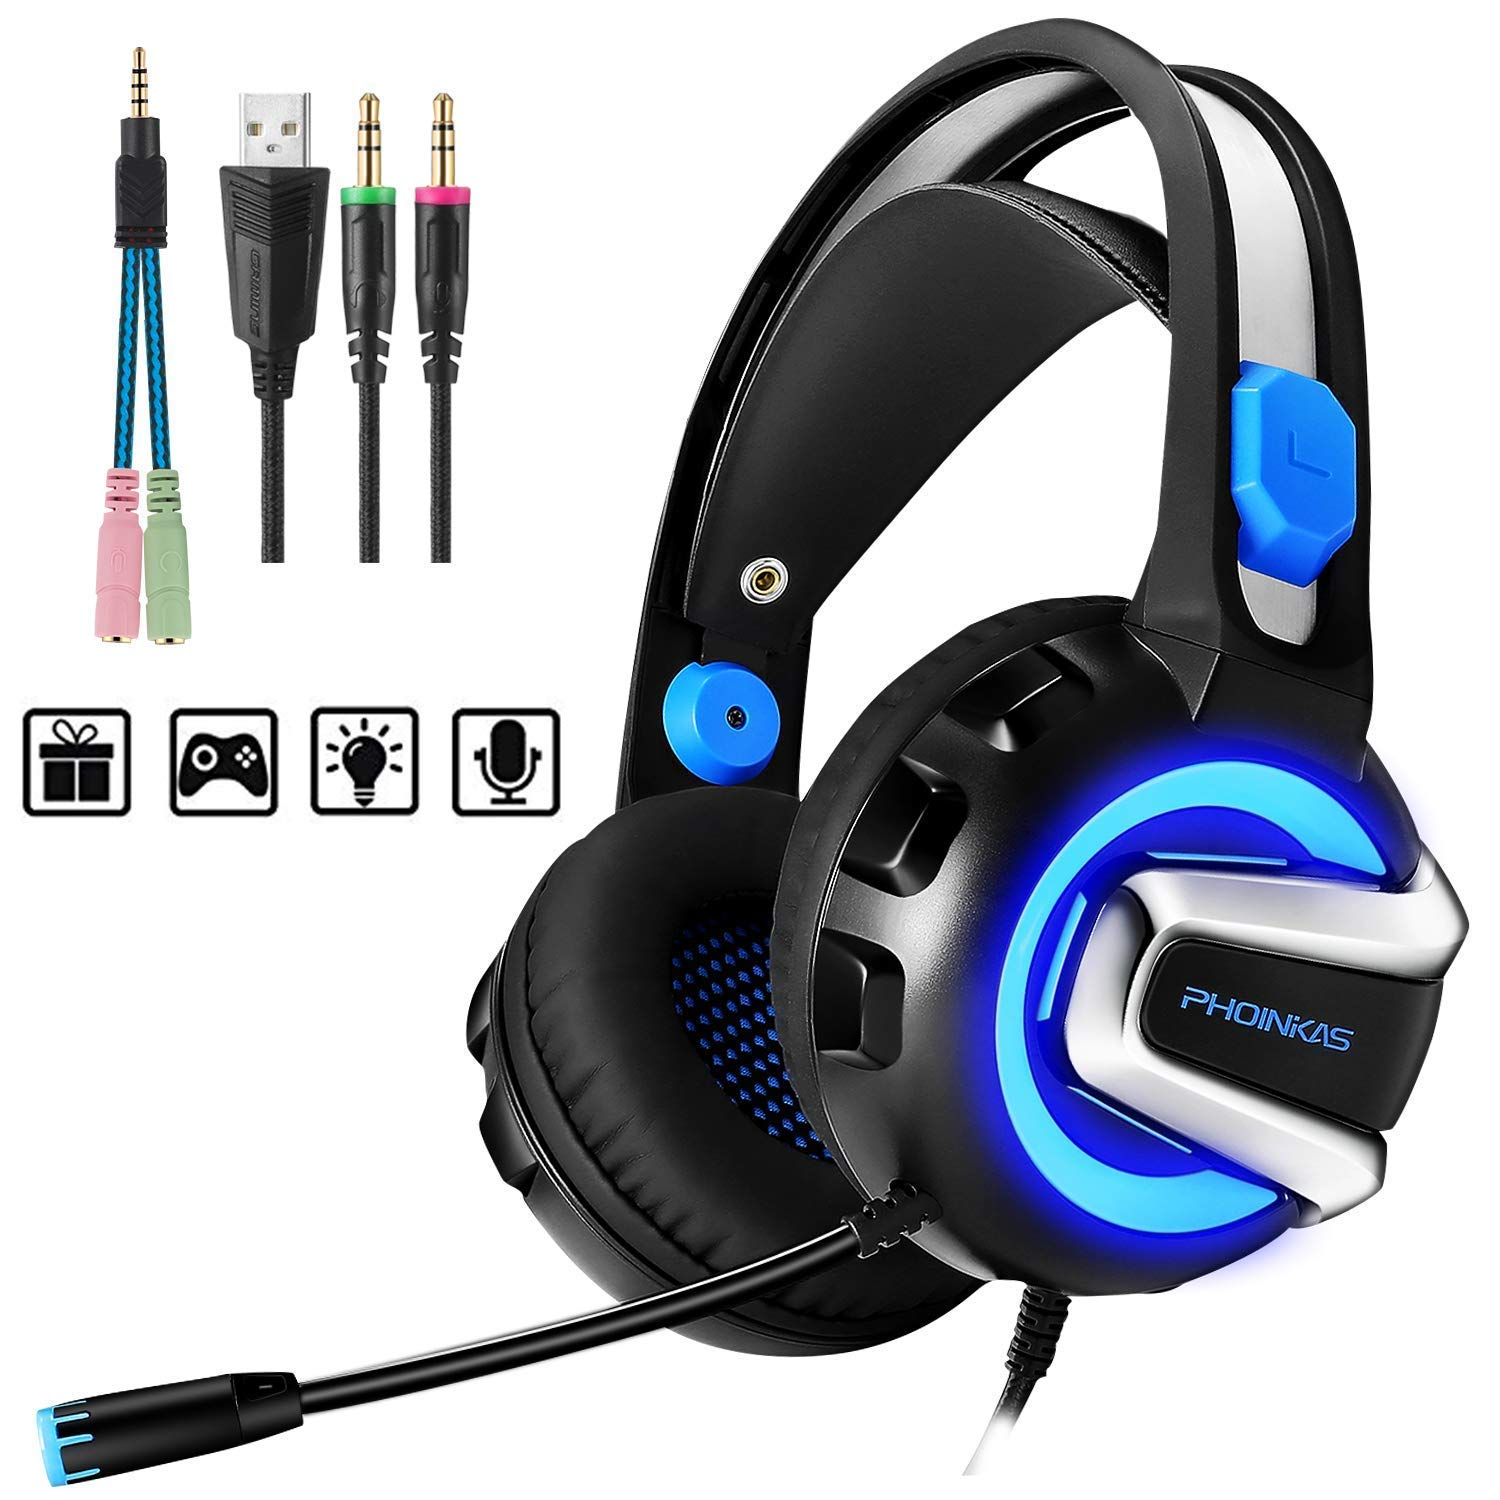 PHOINIKAS H4 Wired Stereo Gaming Headset for Xbox One,PS4, PC, Laptop, Nintendo Switch Games,Over Ear PC Gaming Headphones with Mic, Surround Sound, Noise Isolation, Volume Control,Led Light Blue